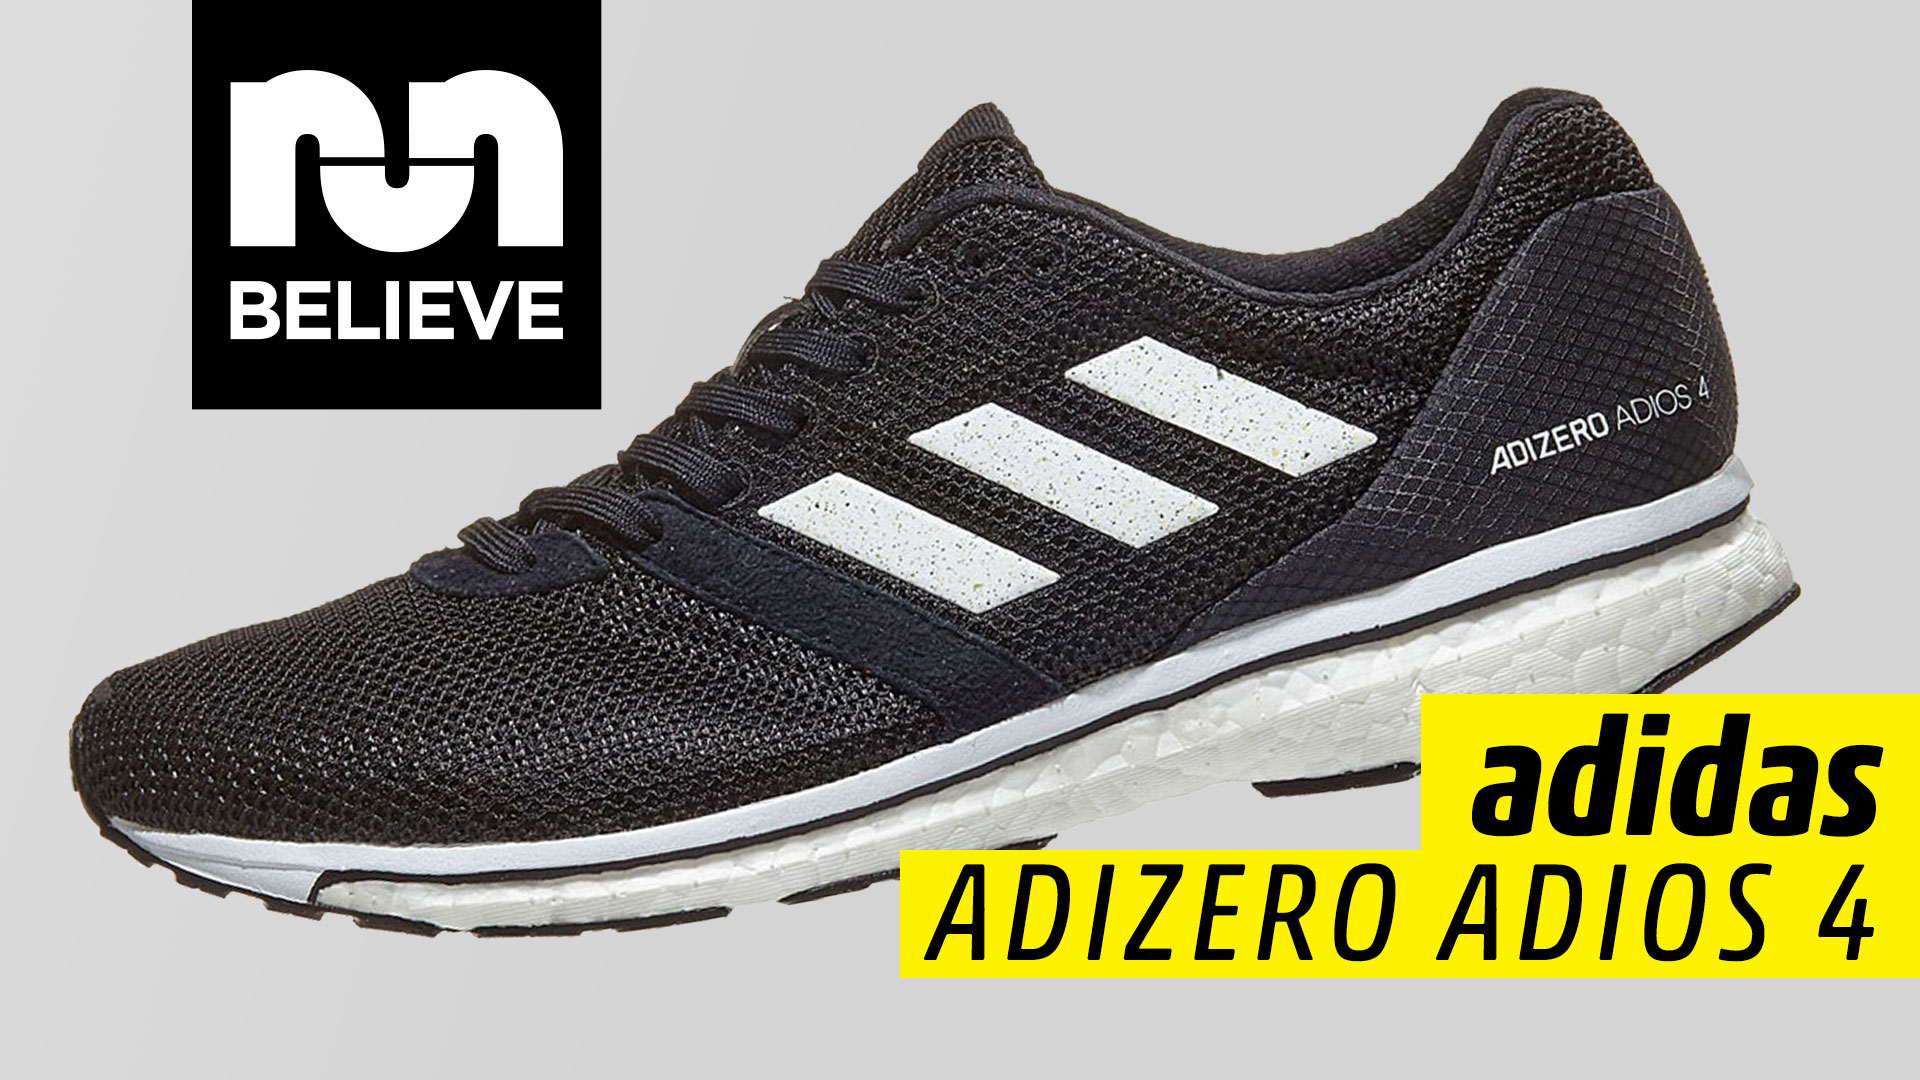 adidas Adizero Adios 2 Running Shoe Review